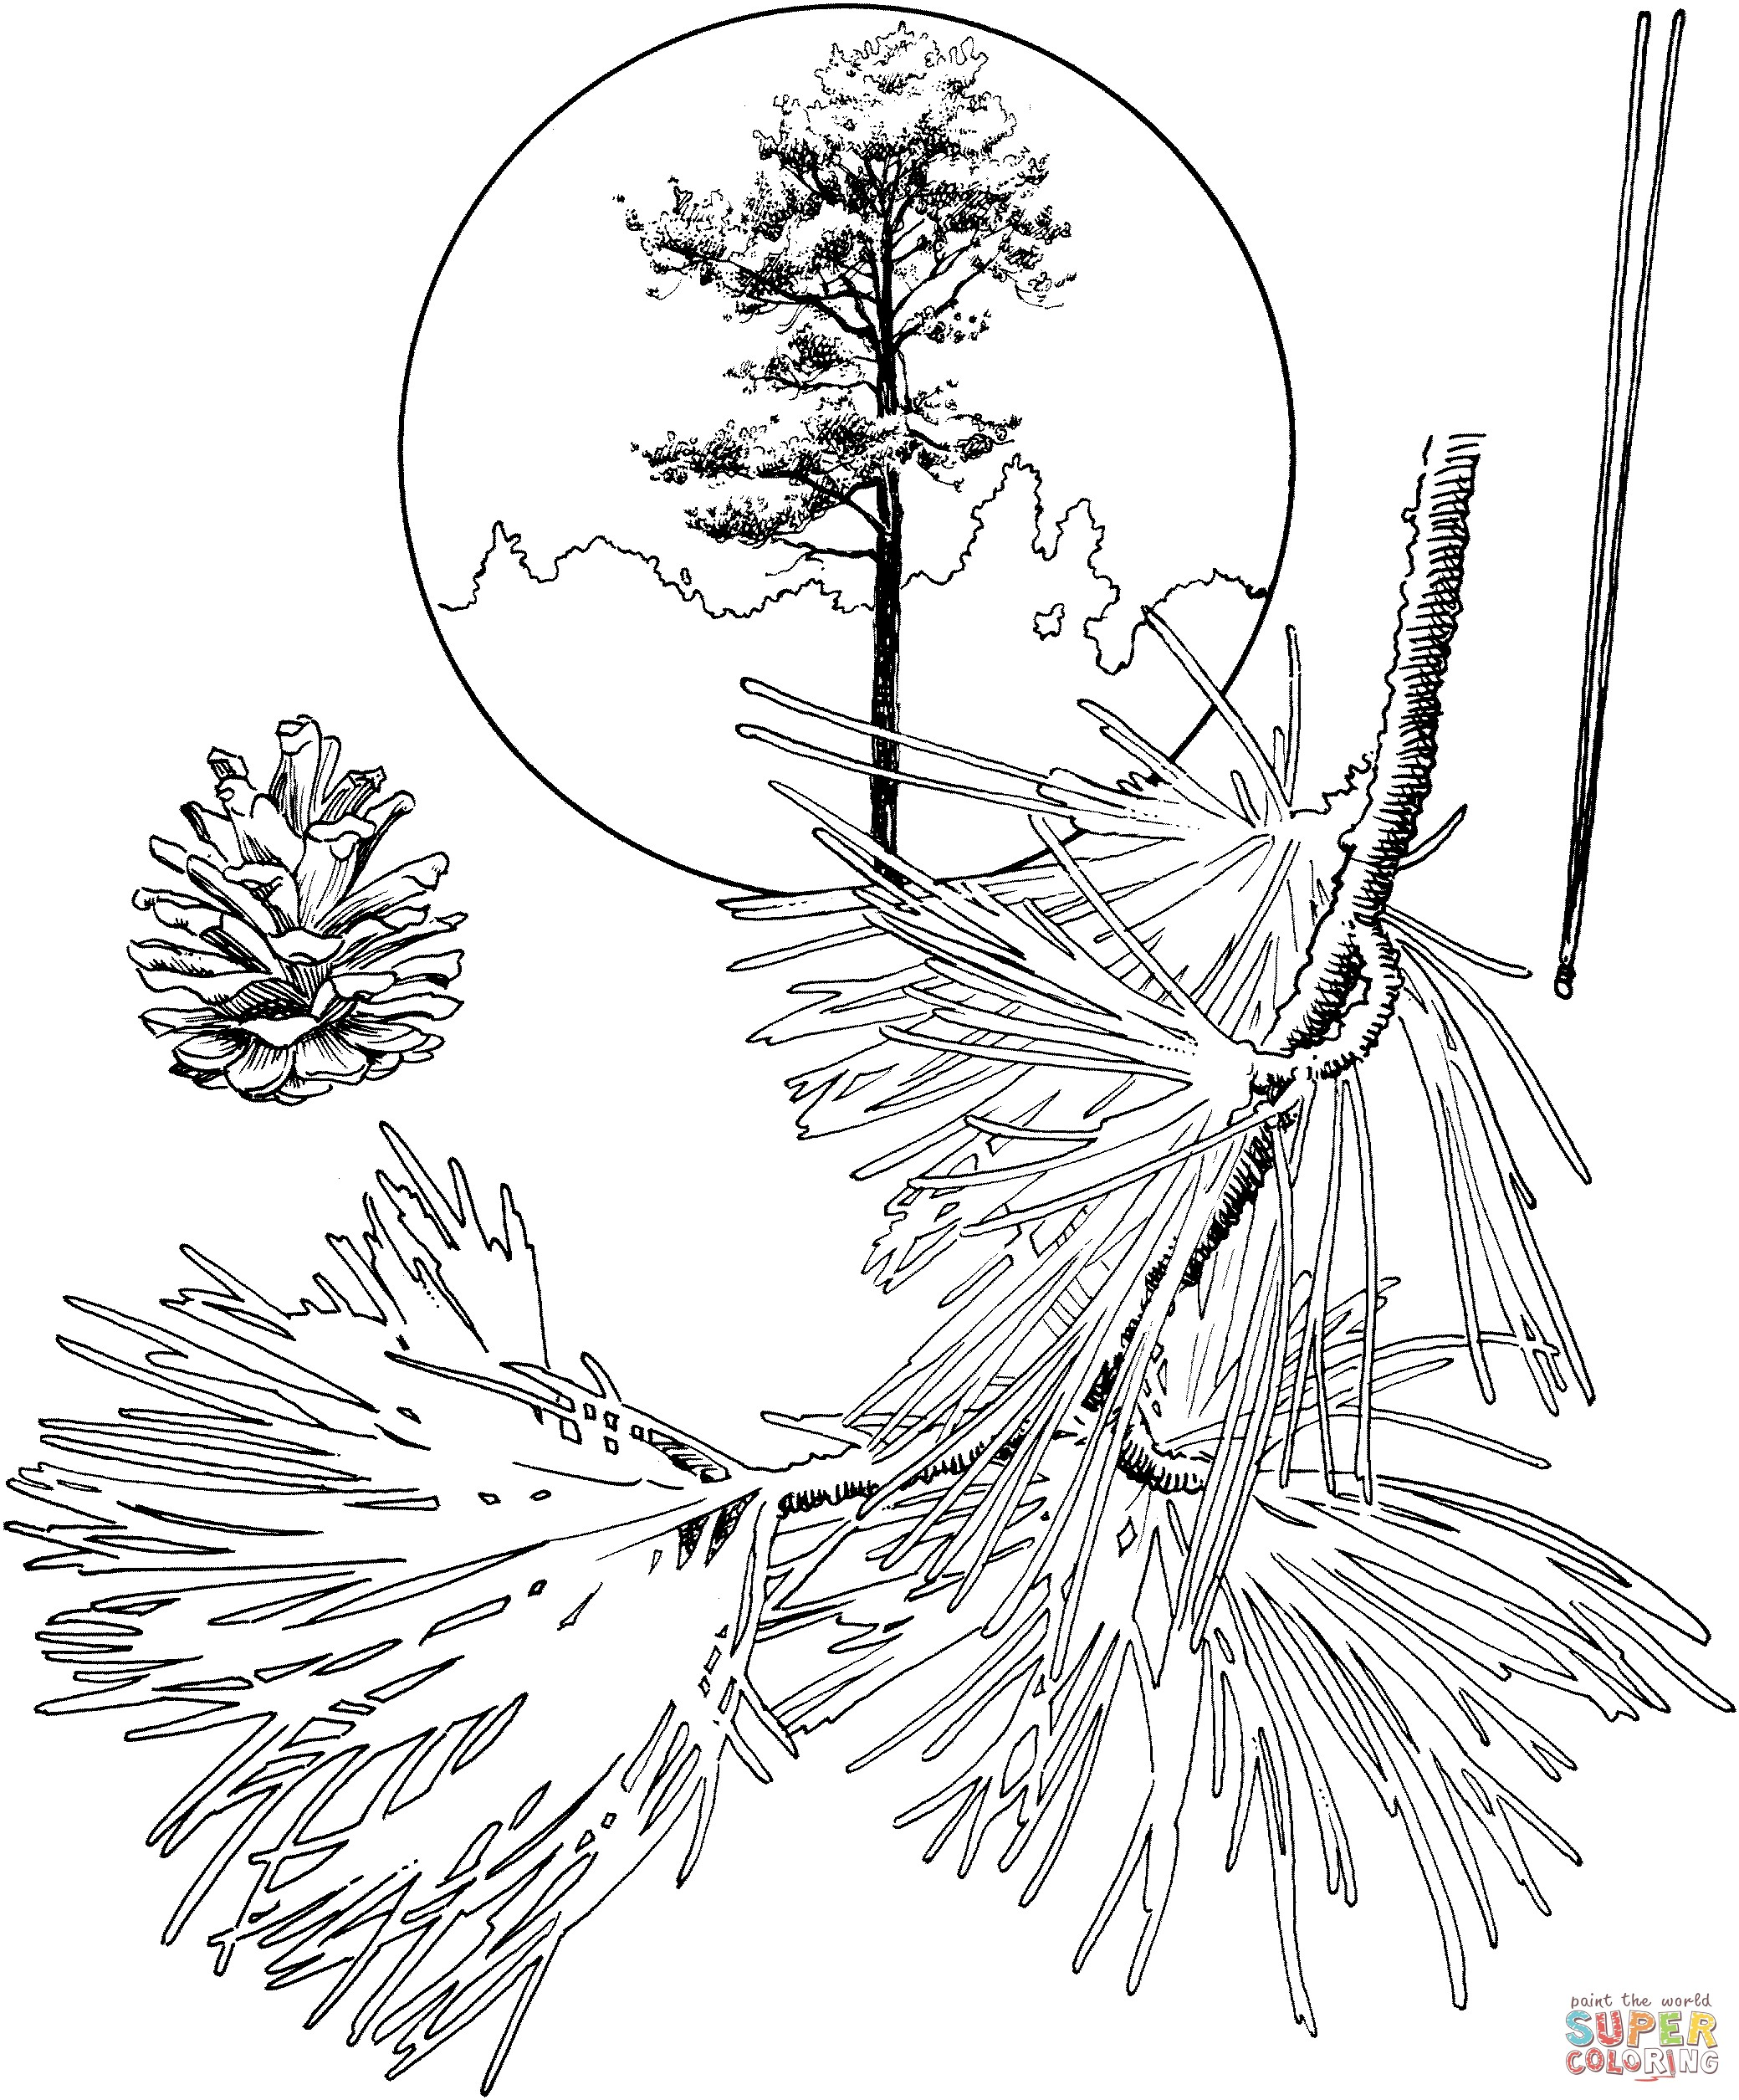 how to draw pine trees step by step simple pine tree drawing at getdrawings free download trees how pine step step draw by to